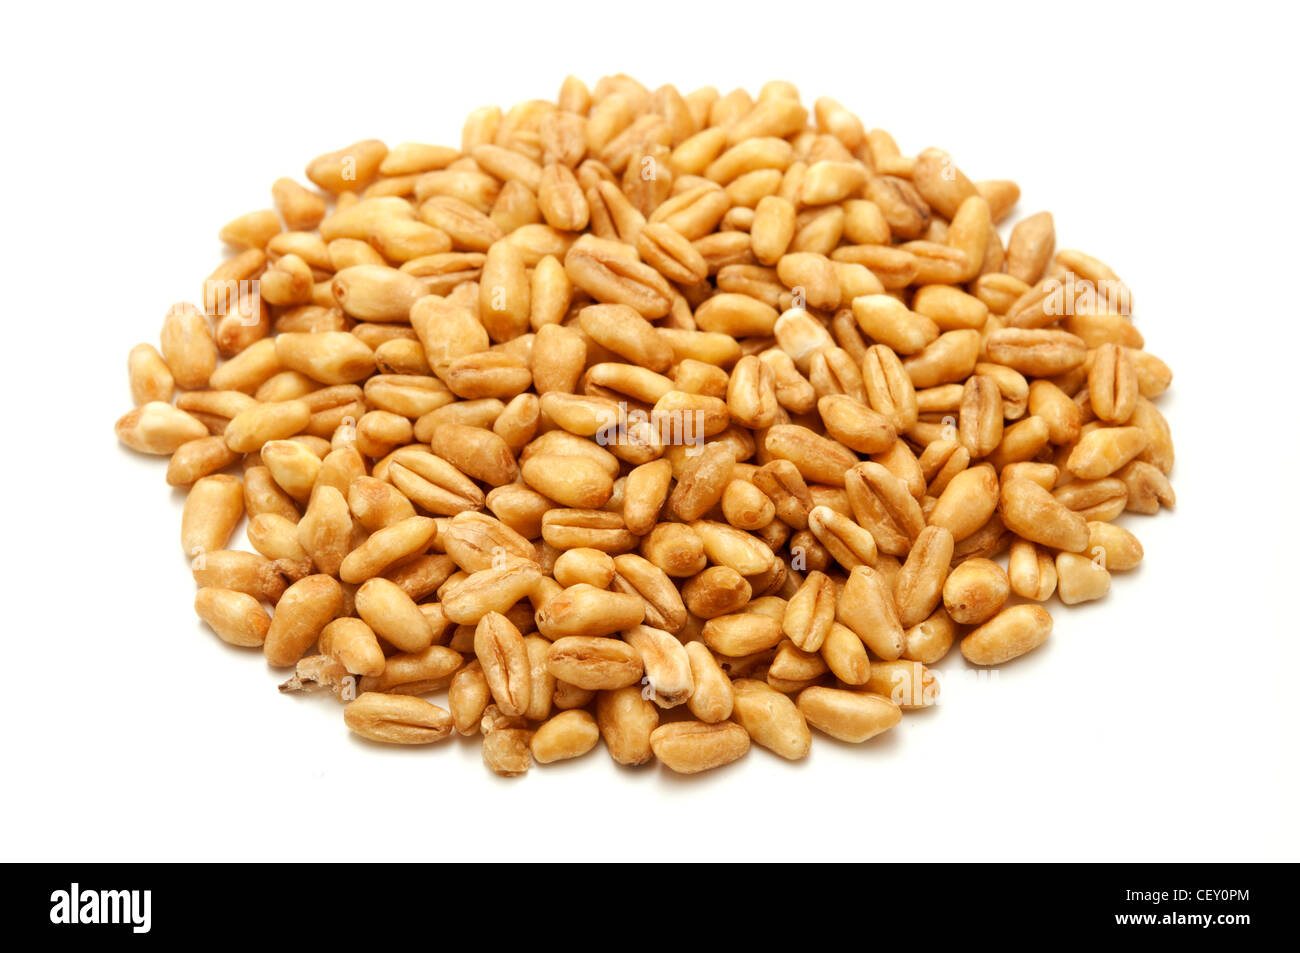 Whole wheat grains on a white background - Stock Image